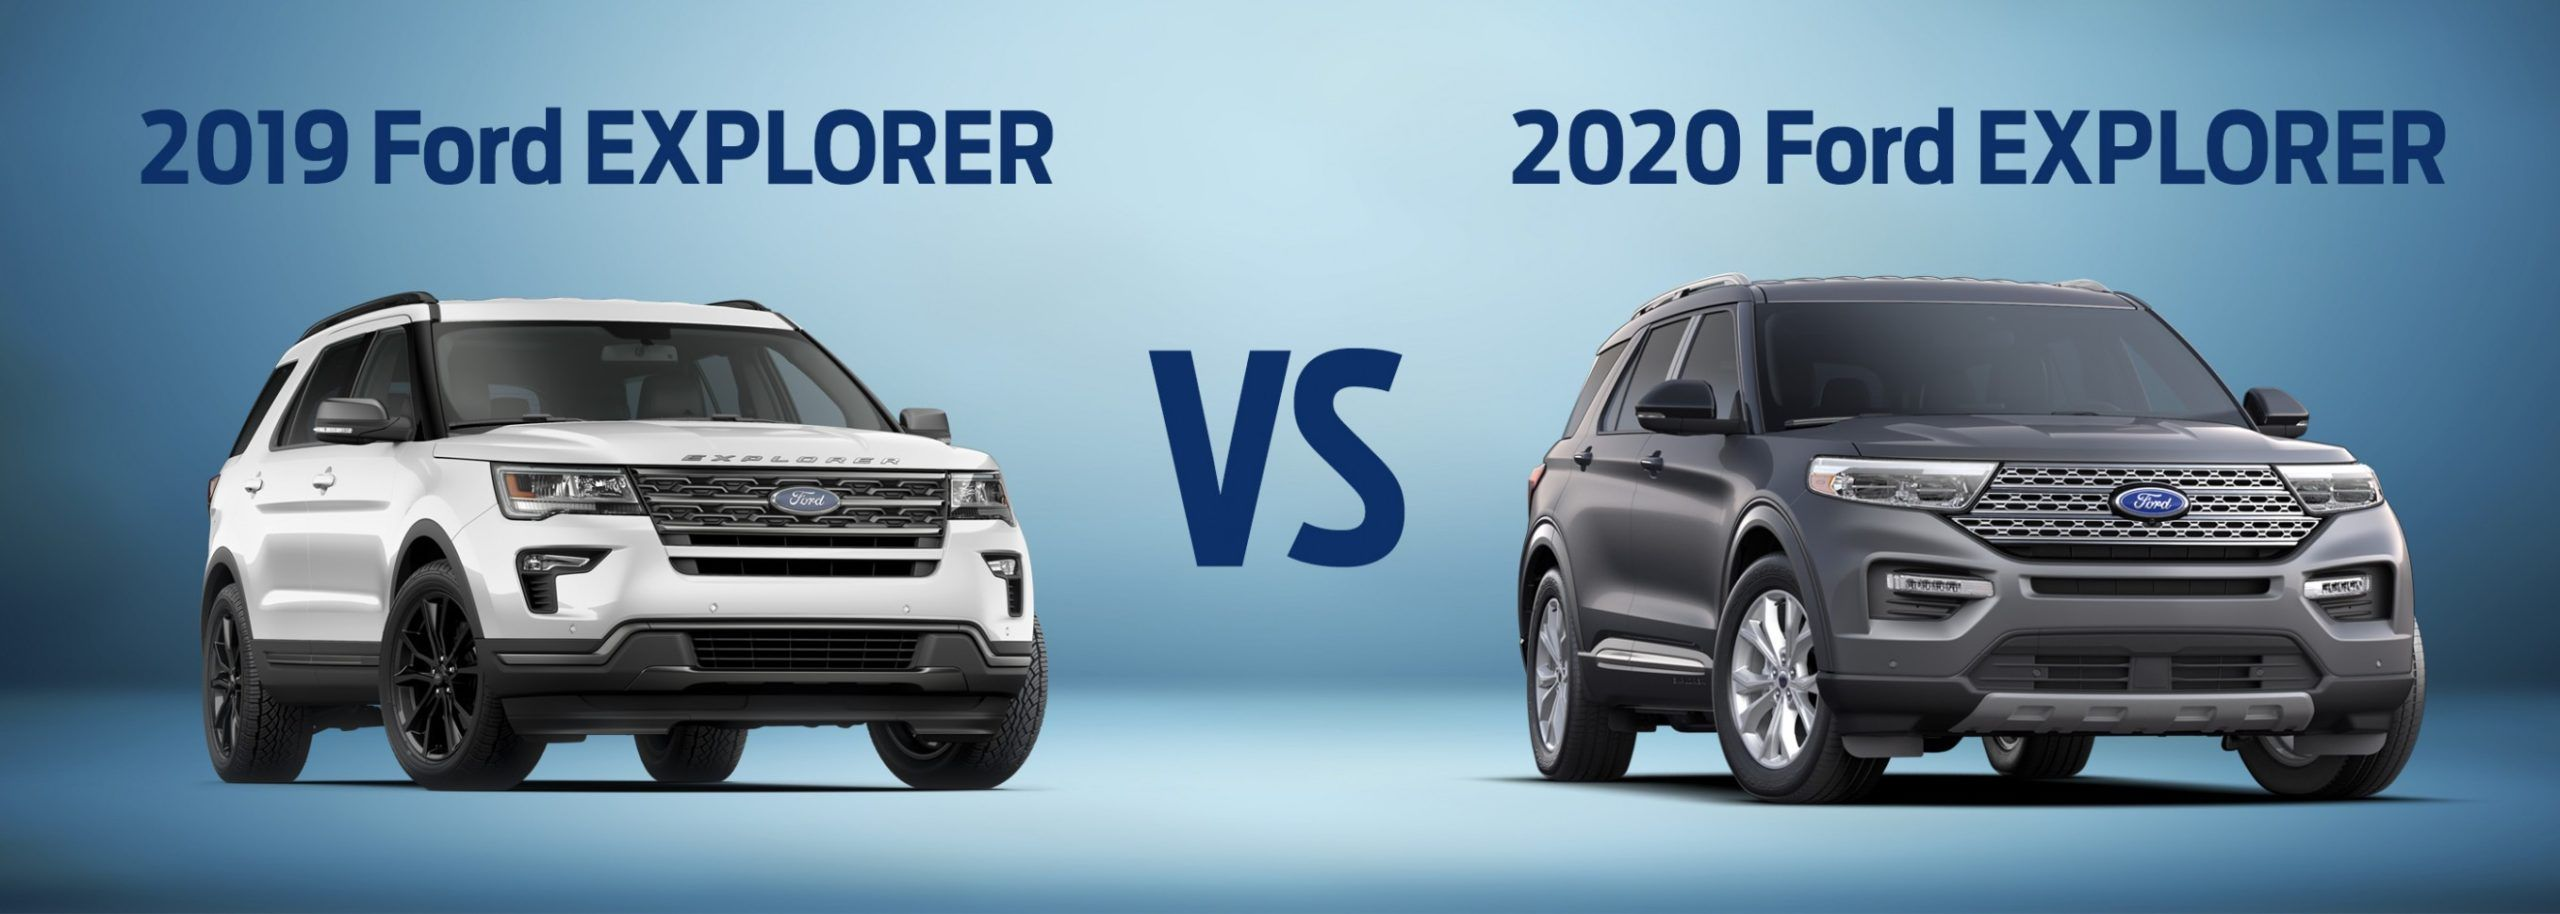 Is Ford Xlt Sport Package 2020 Design Still (Dengan gambar)